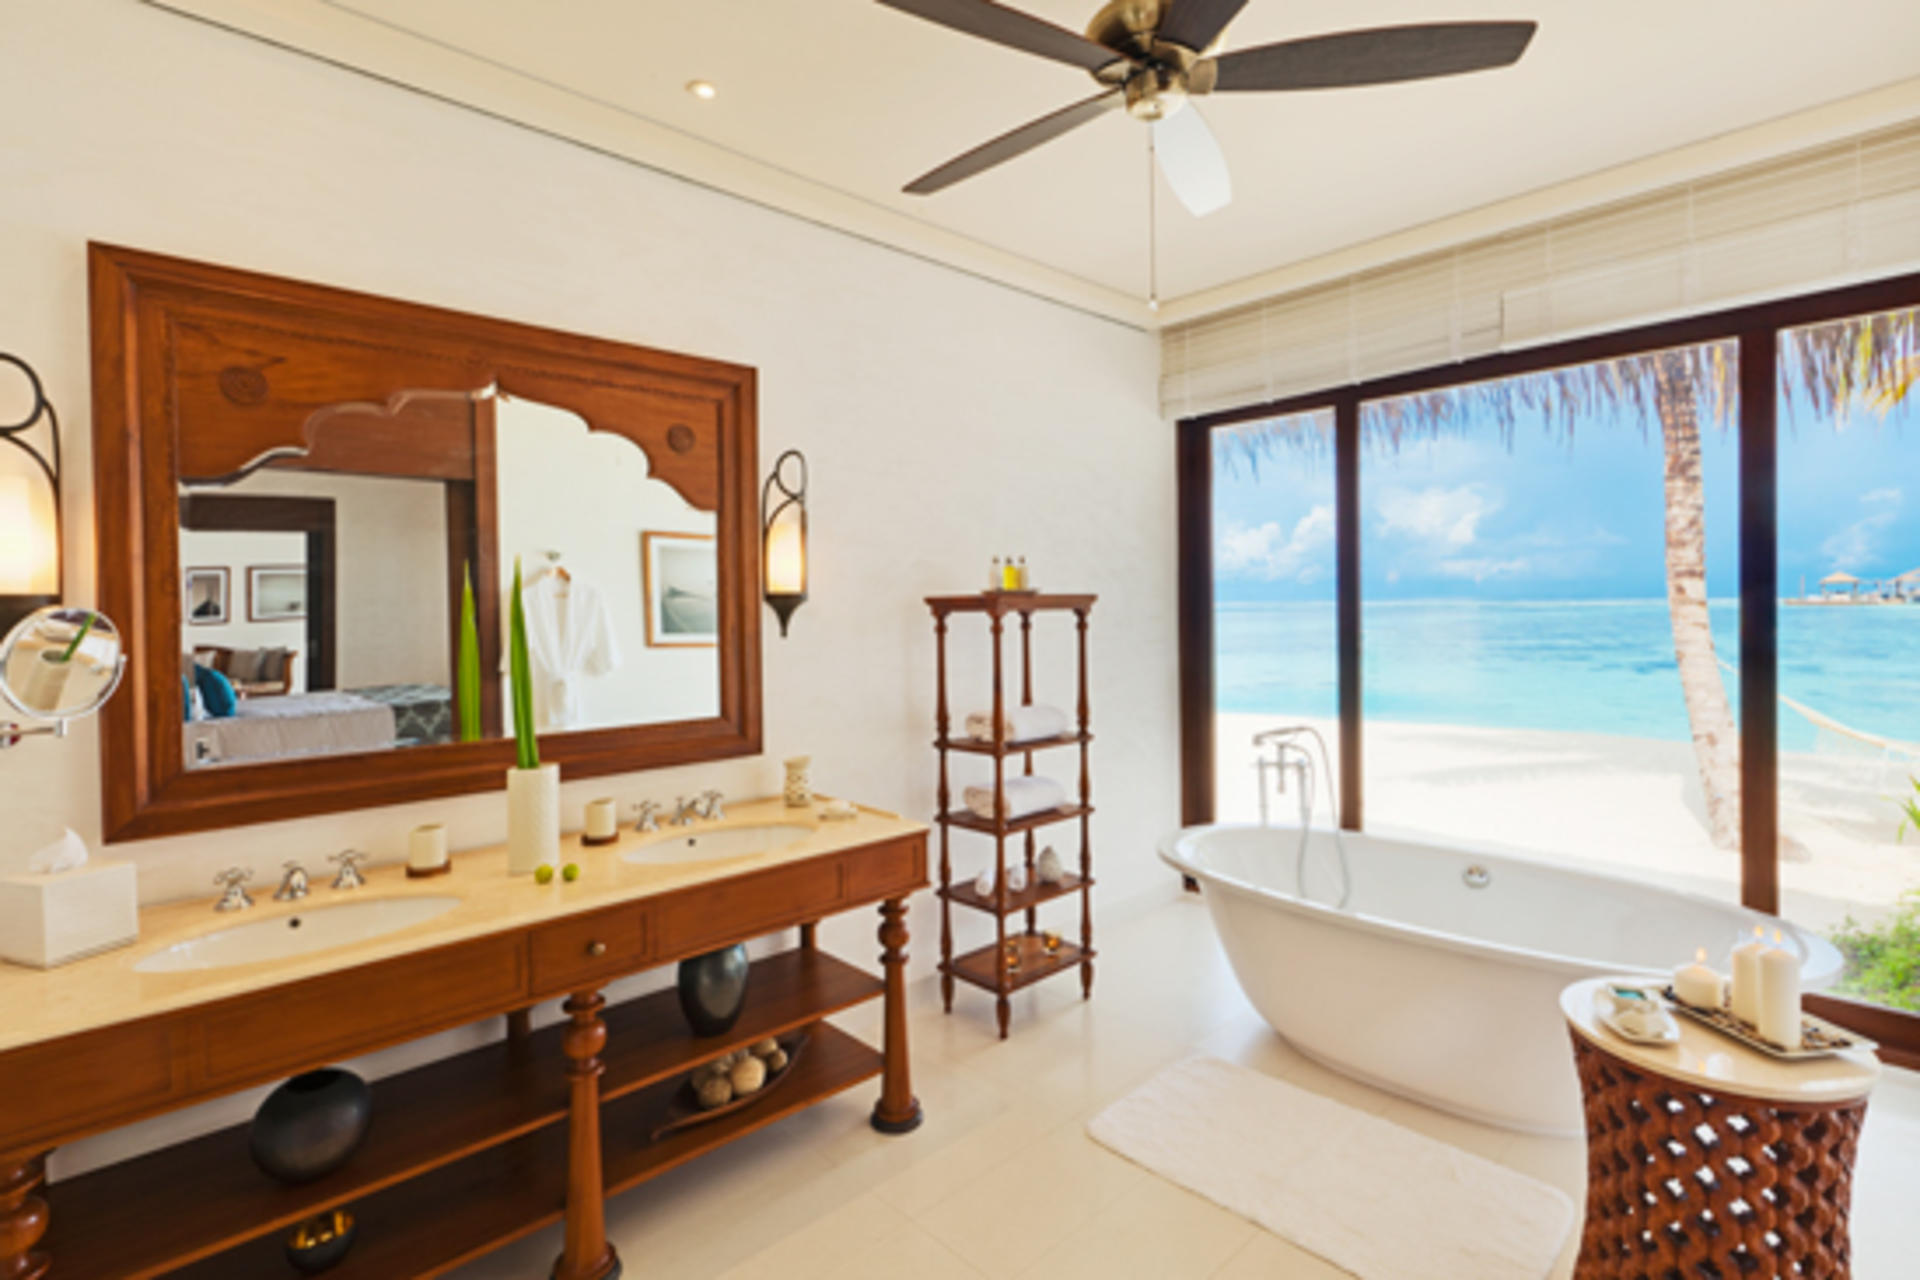 Cenizaro_ResidencesMaldives_One-Bedroom-Beach-Villa-Bathroom-1